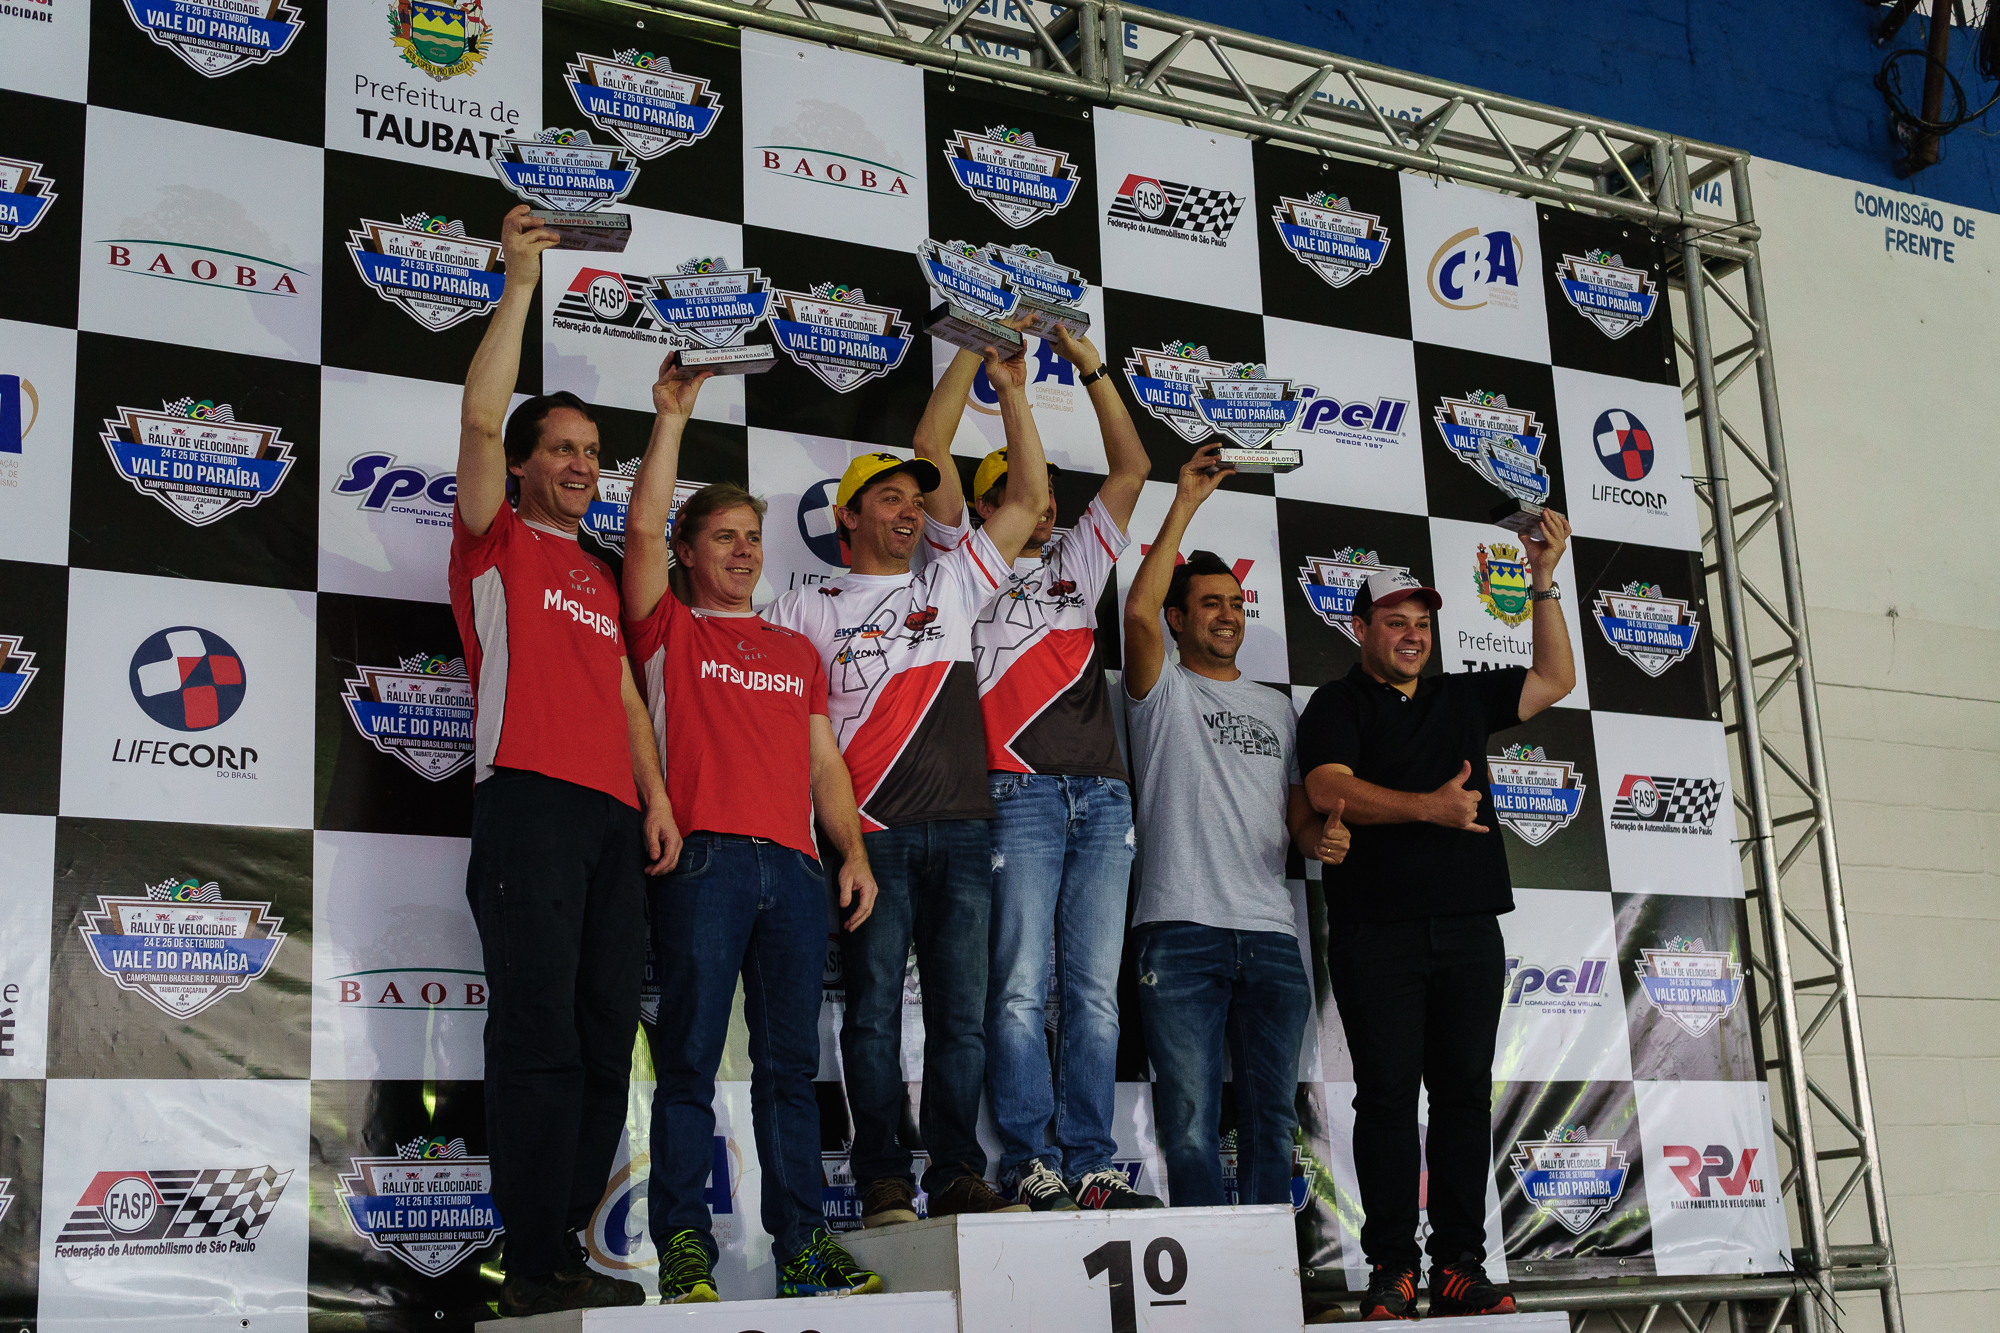 Podium for Mauricio's Class with Mauricio in first